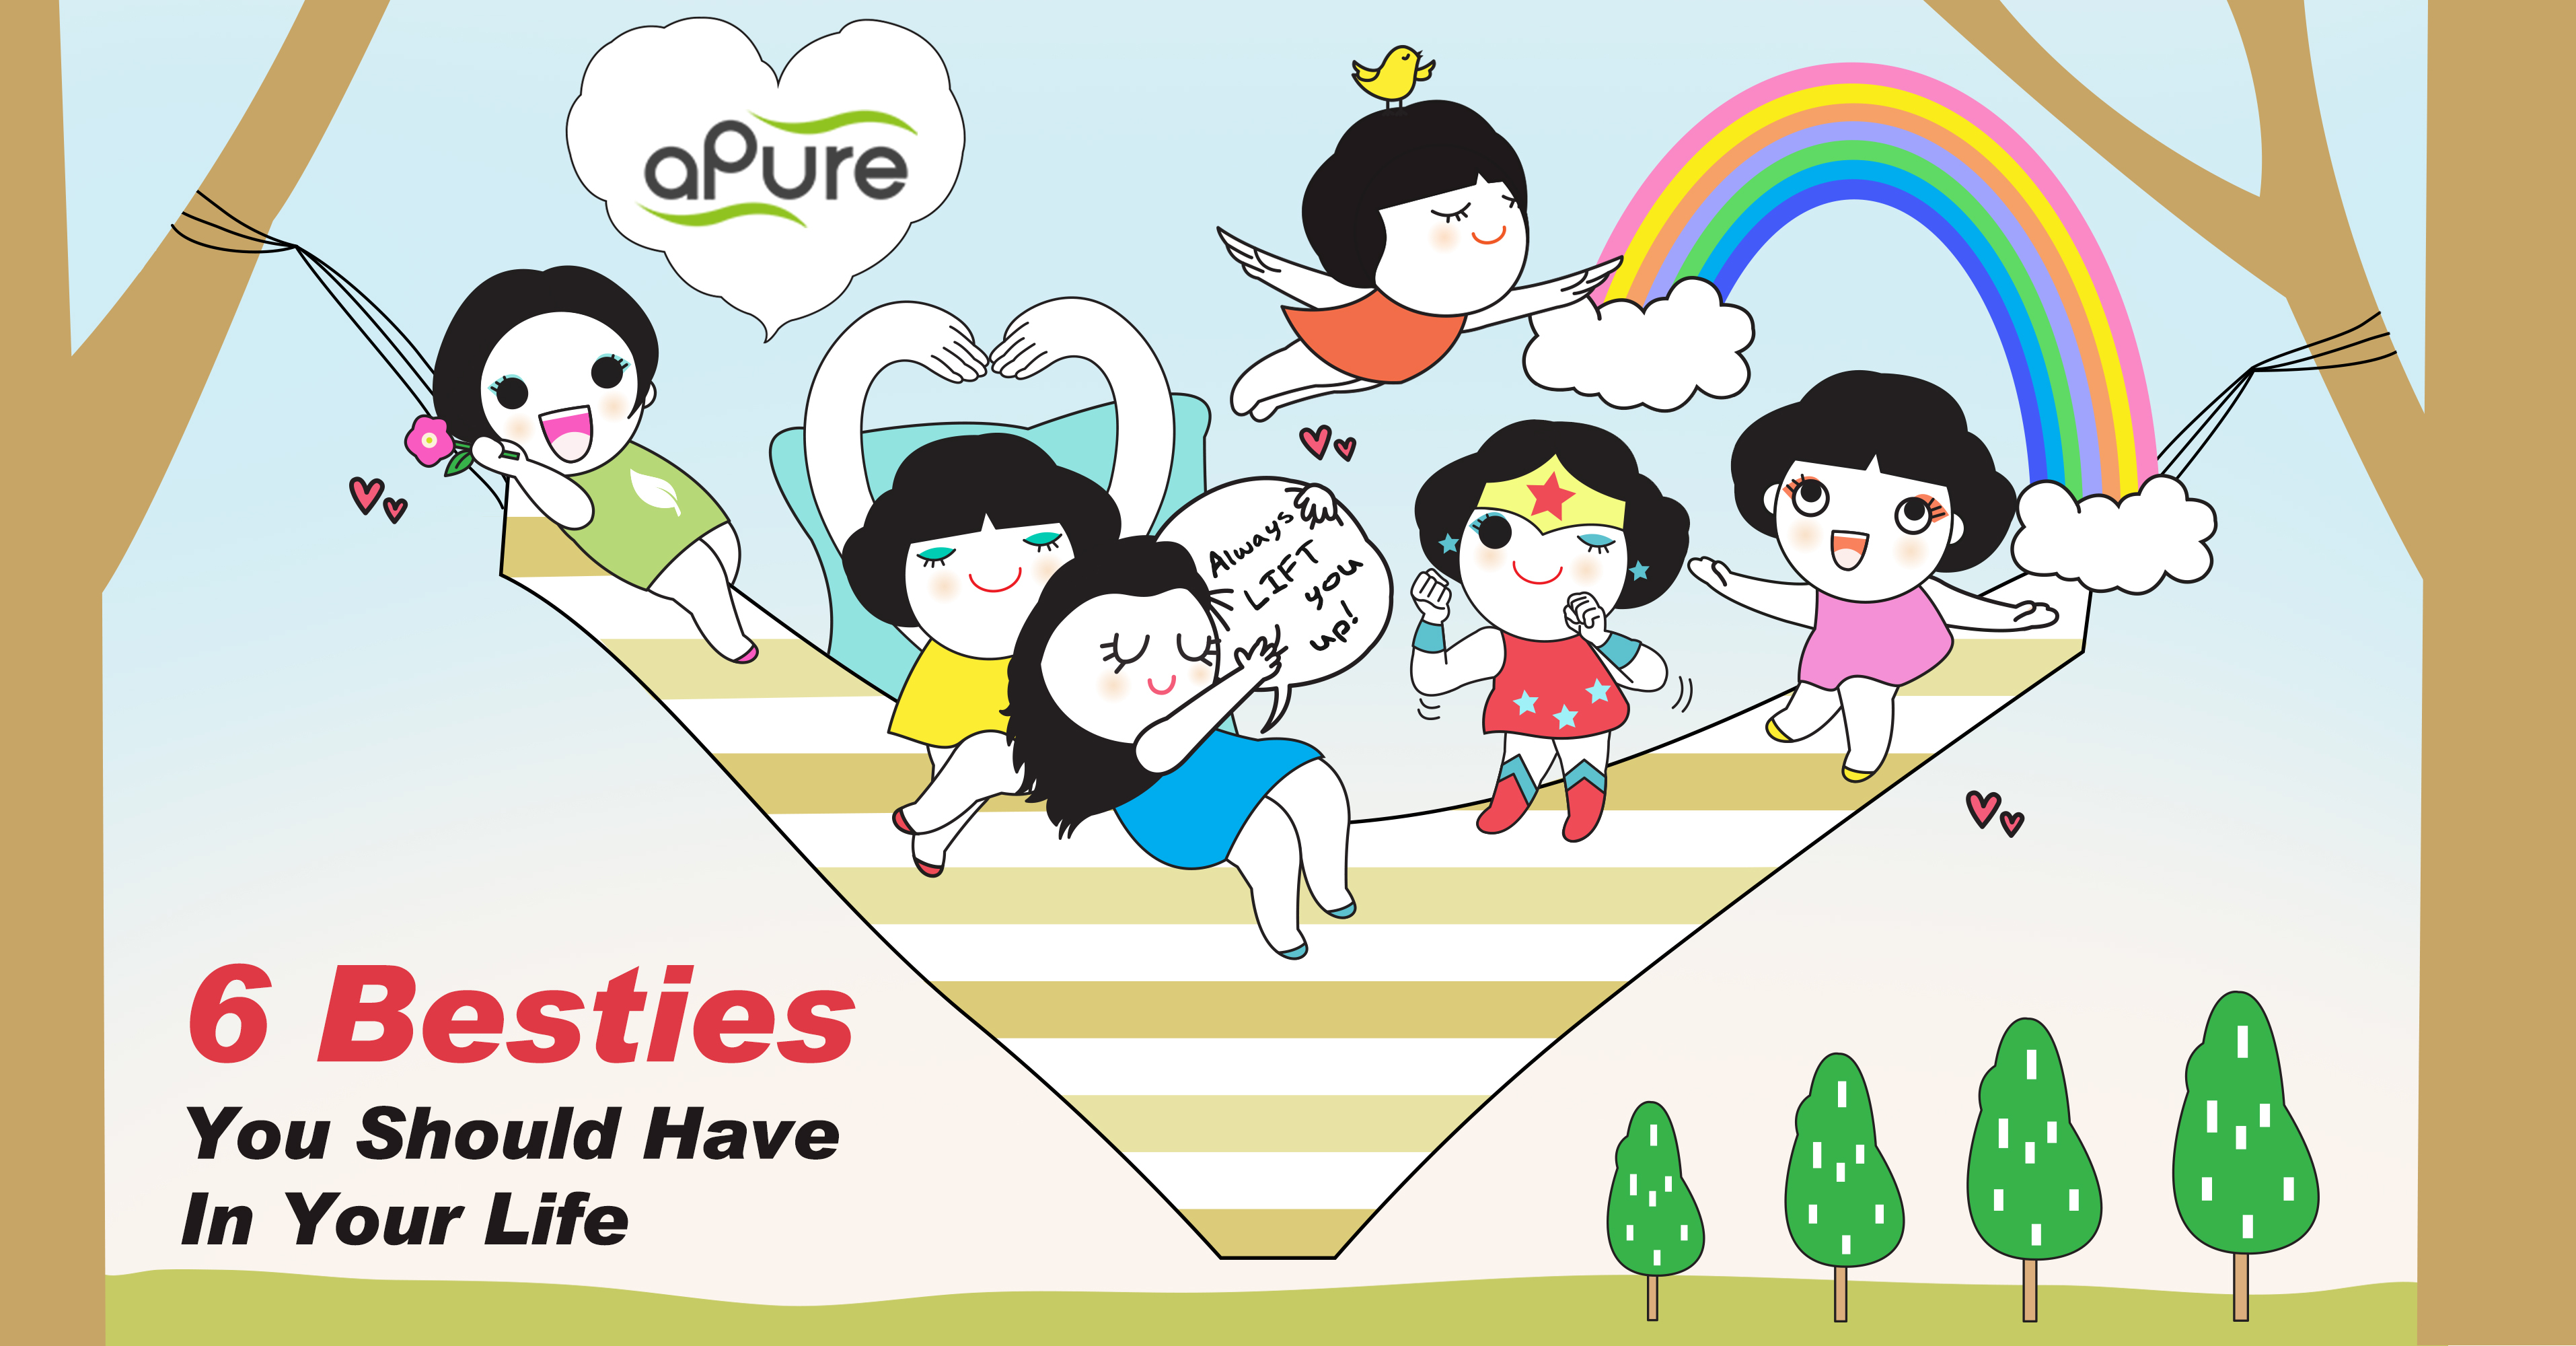 Wholehearted Besties That Never Betray You Apure Introduces Pure5 5 Underwear As Your Intimate Bff Business Wire